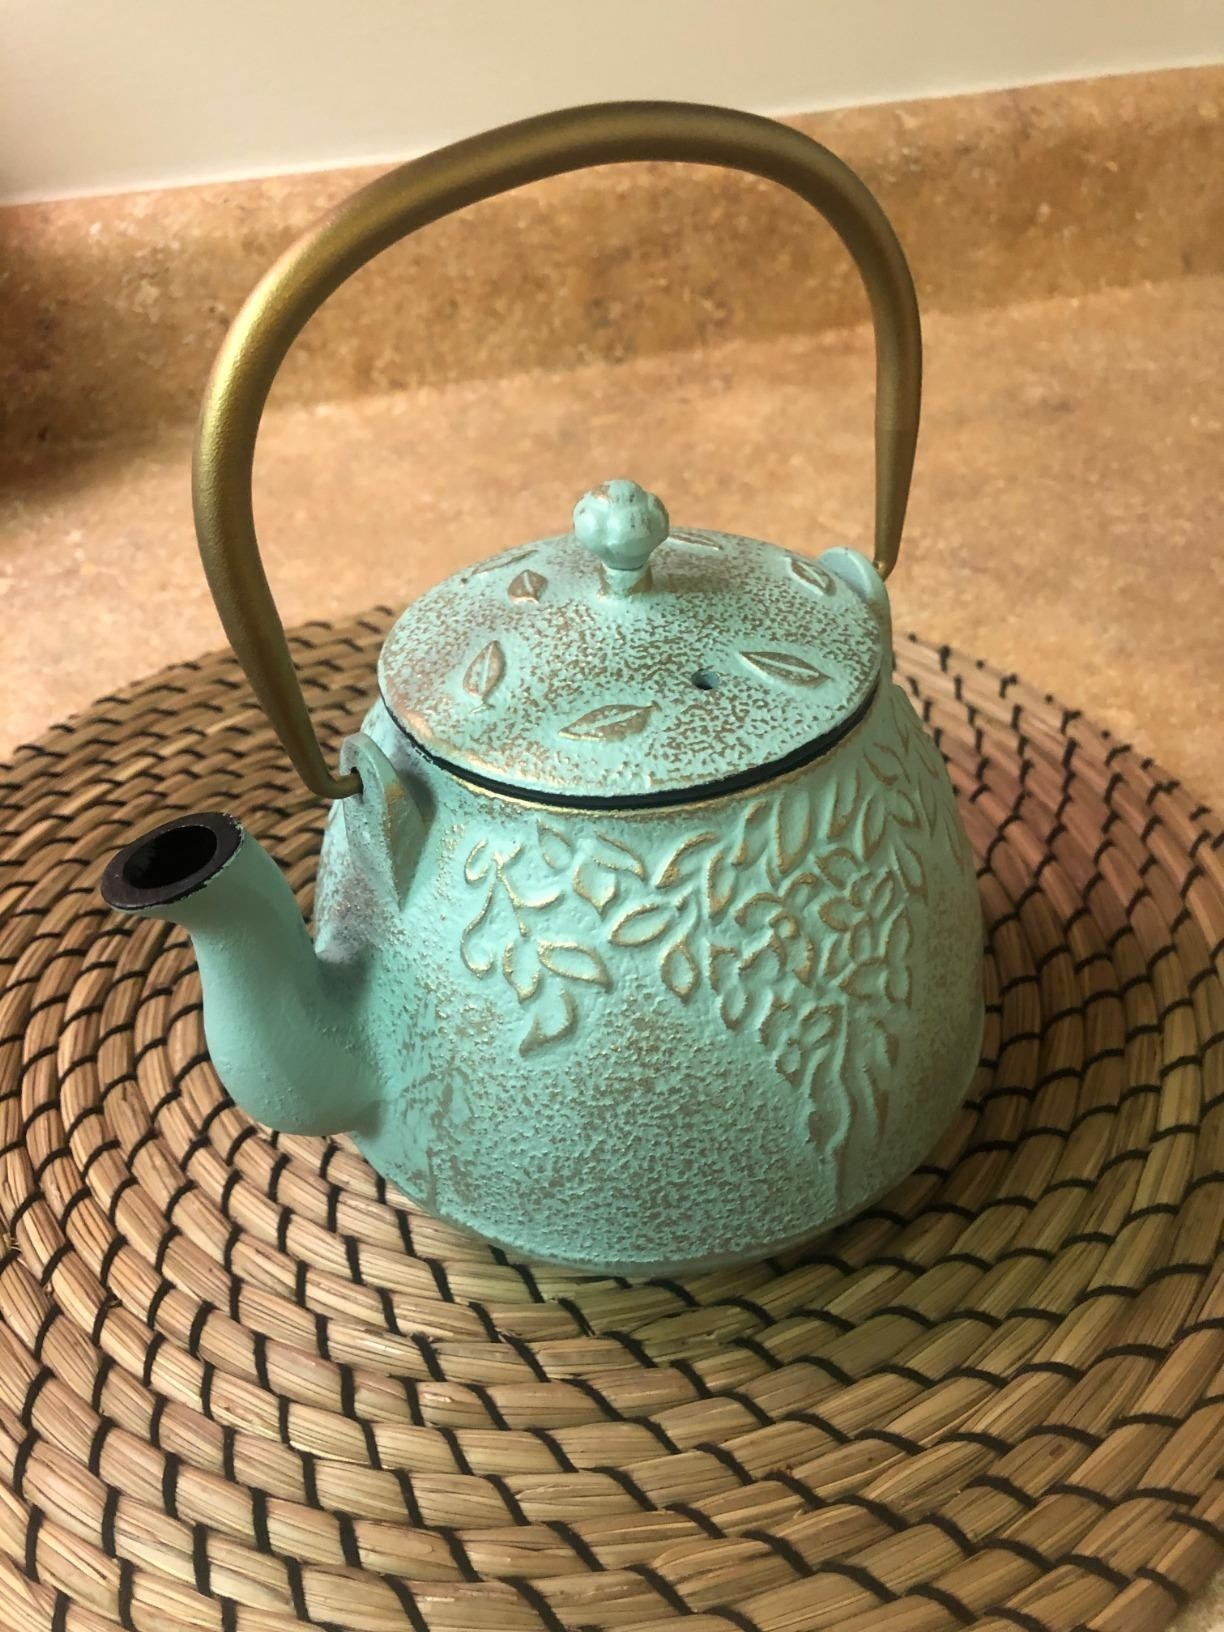 reviewer showing the teapot in teal